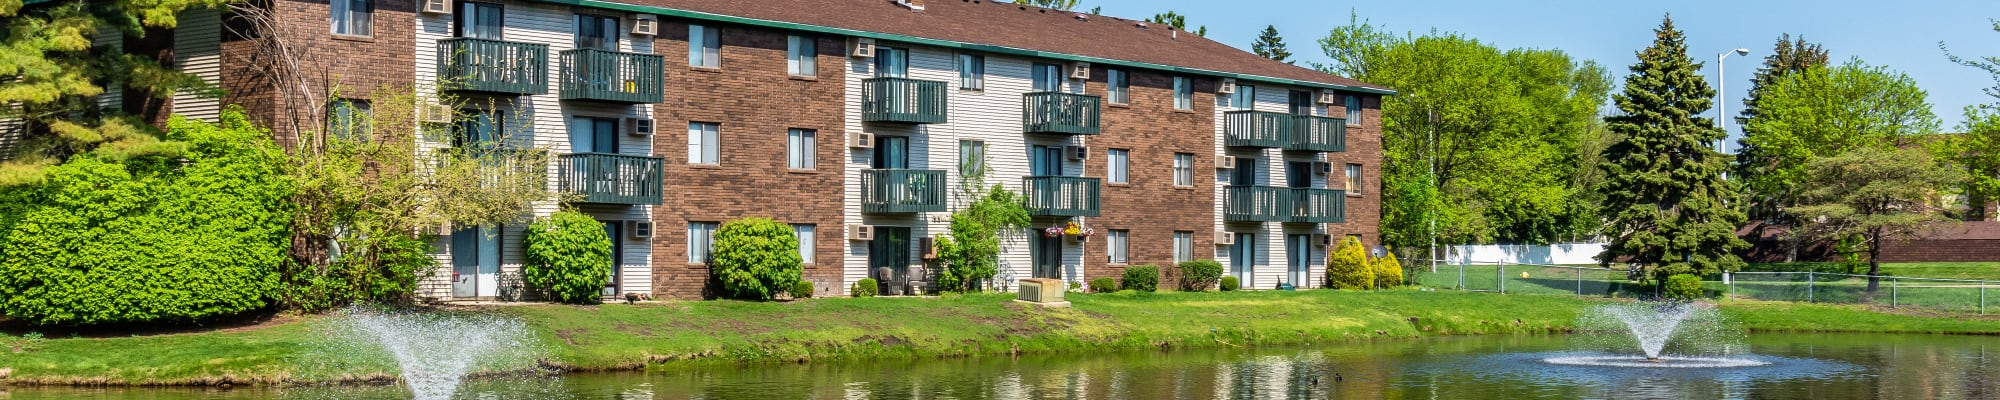 Join Our Team at Oldebrook Apartments in Wyoming, Michigan